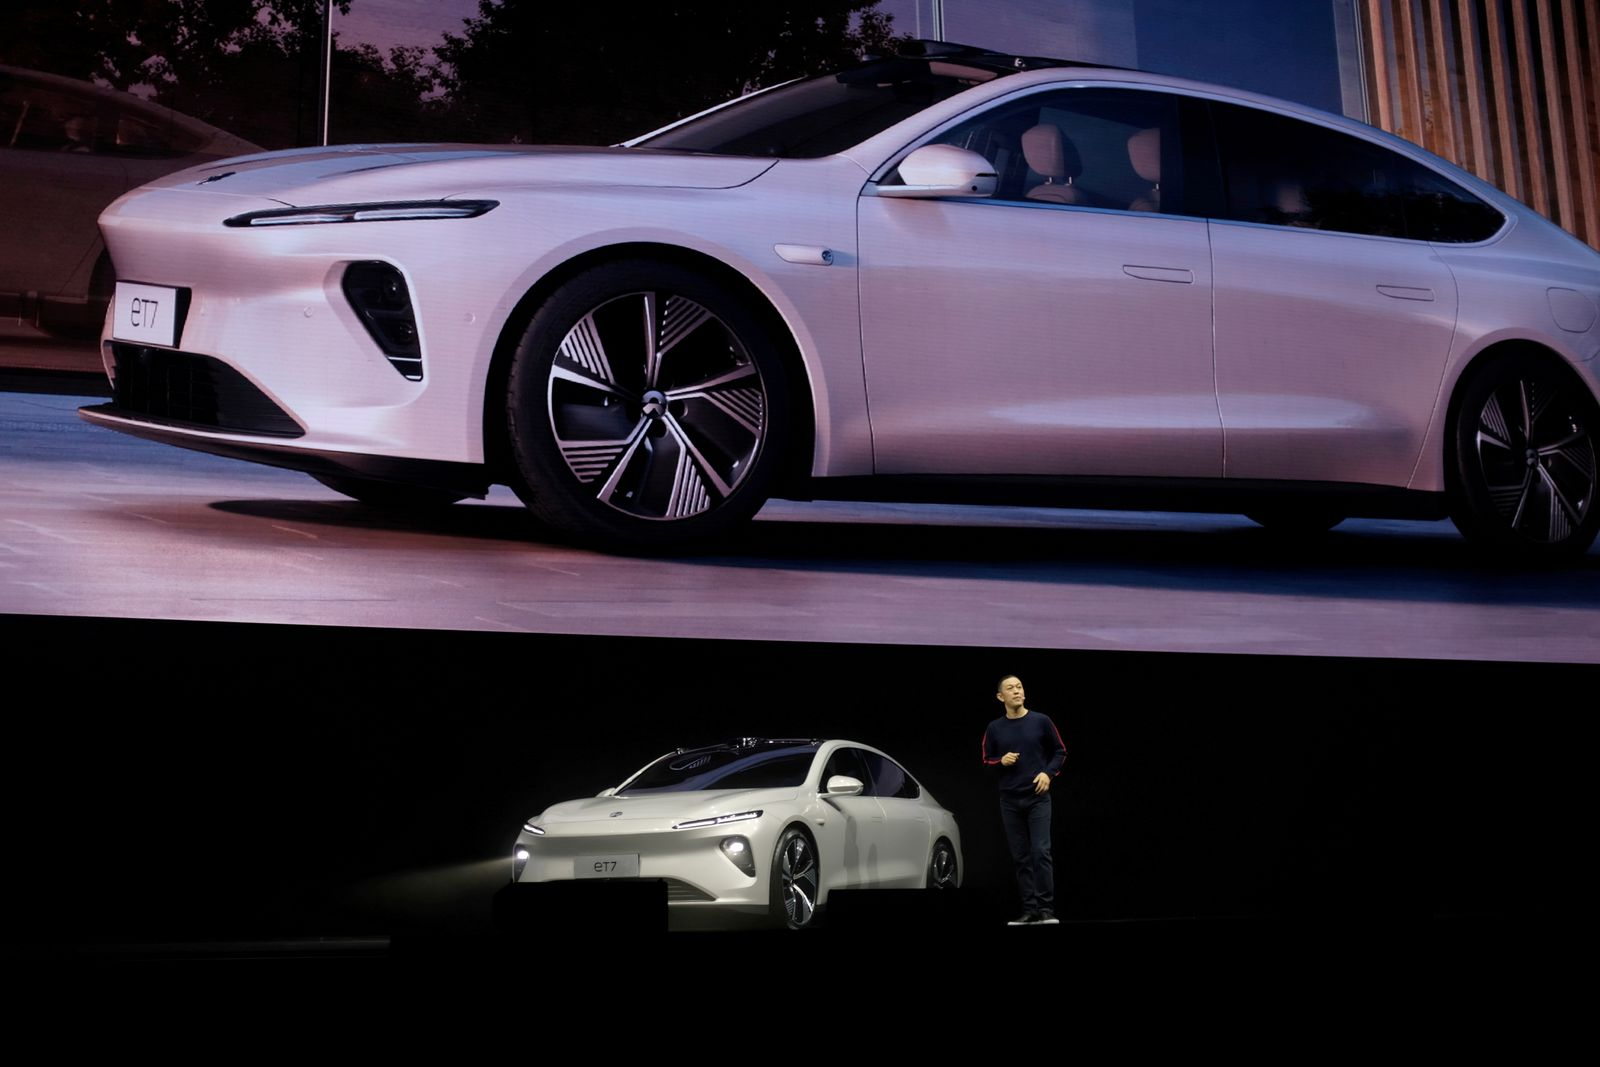 FILE PHOTO: Chinese electric vehicle maker Nio Inc's product launch event in Chengdu